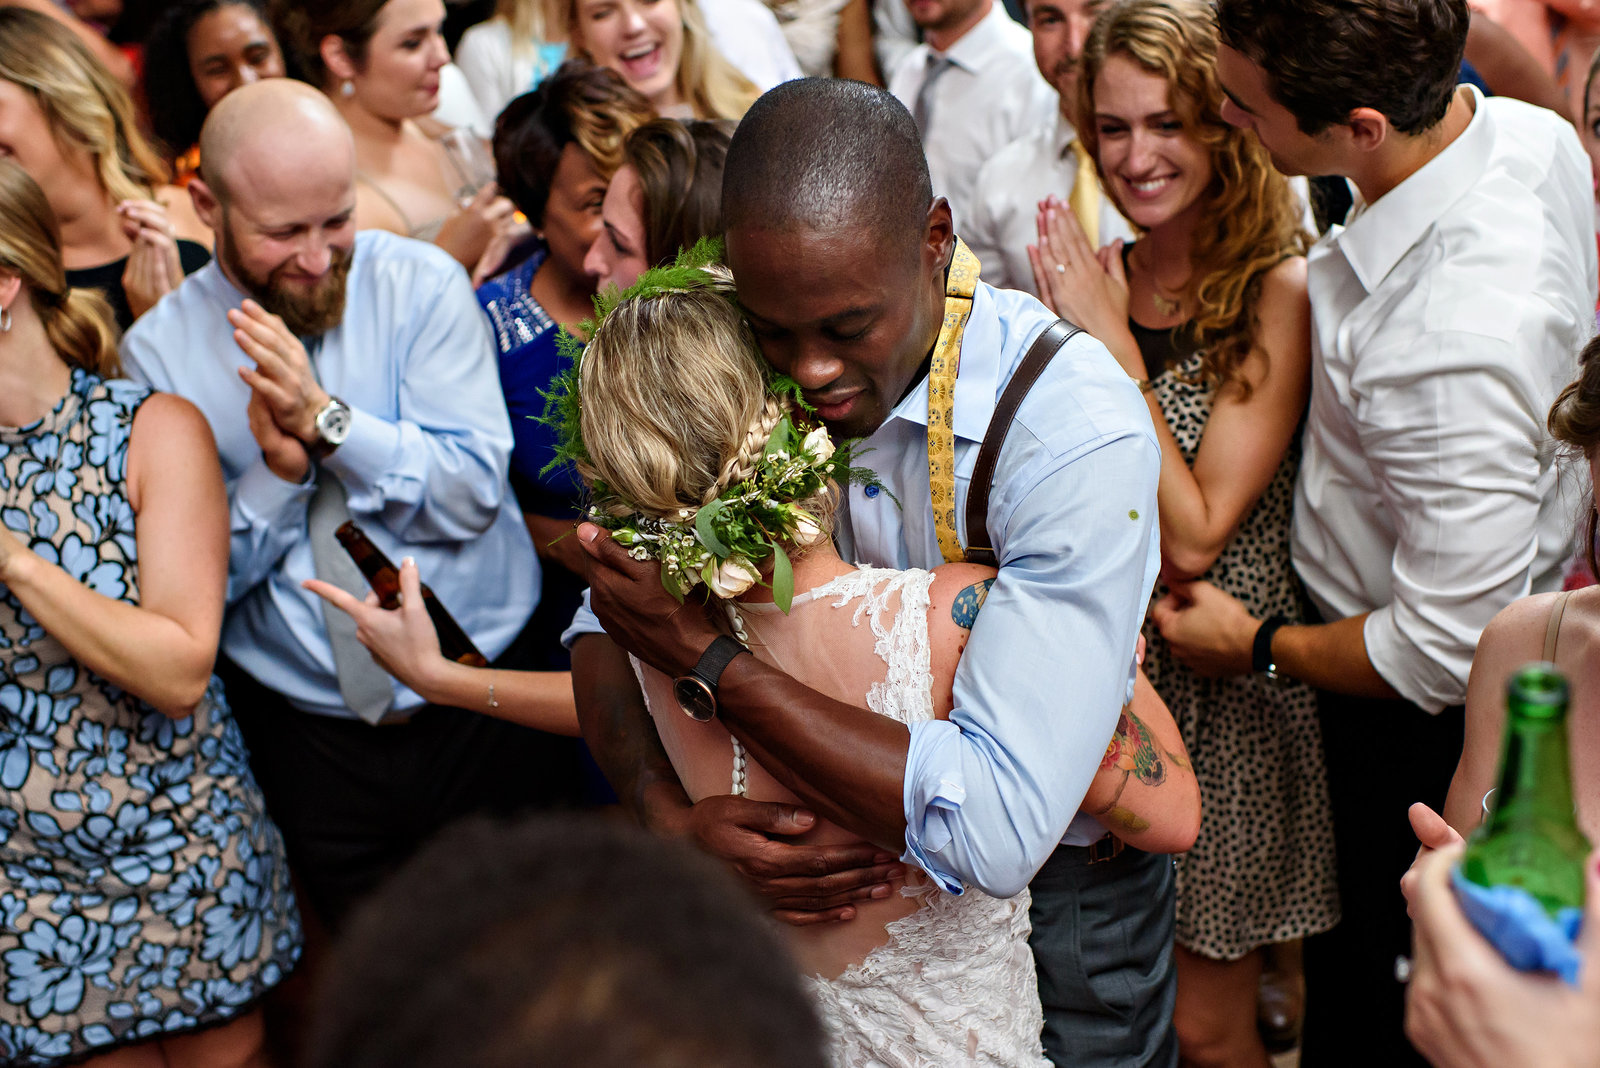 A loving embrace from a groom to his bride during the last song at their reception in Baltimore, MD.